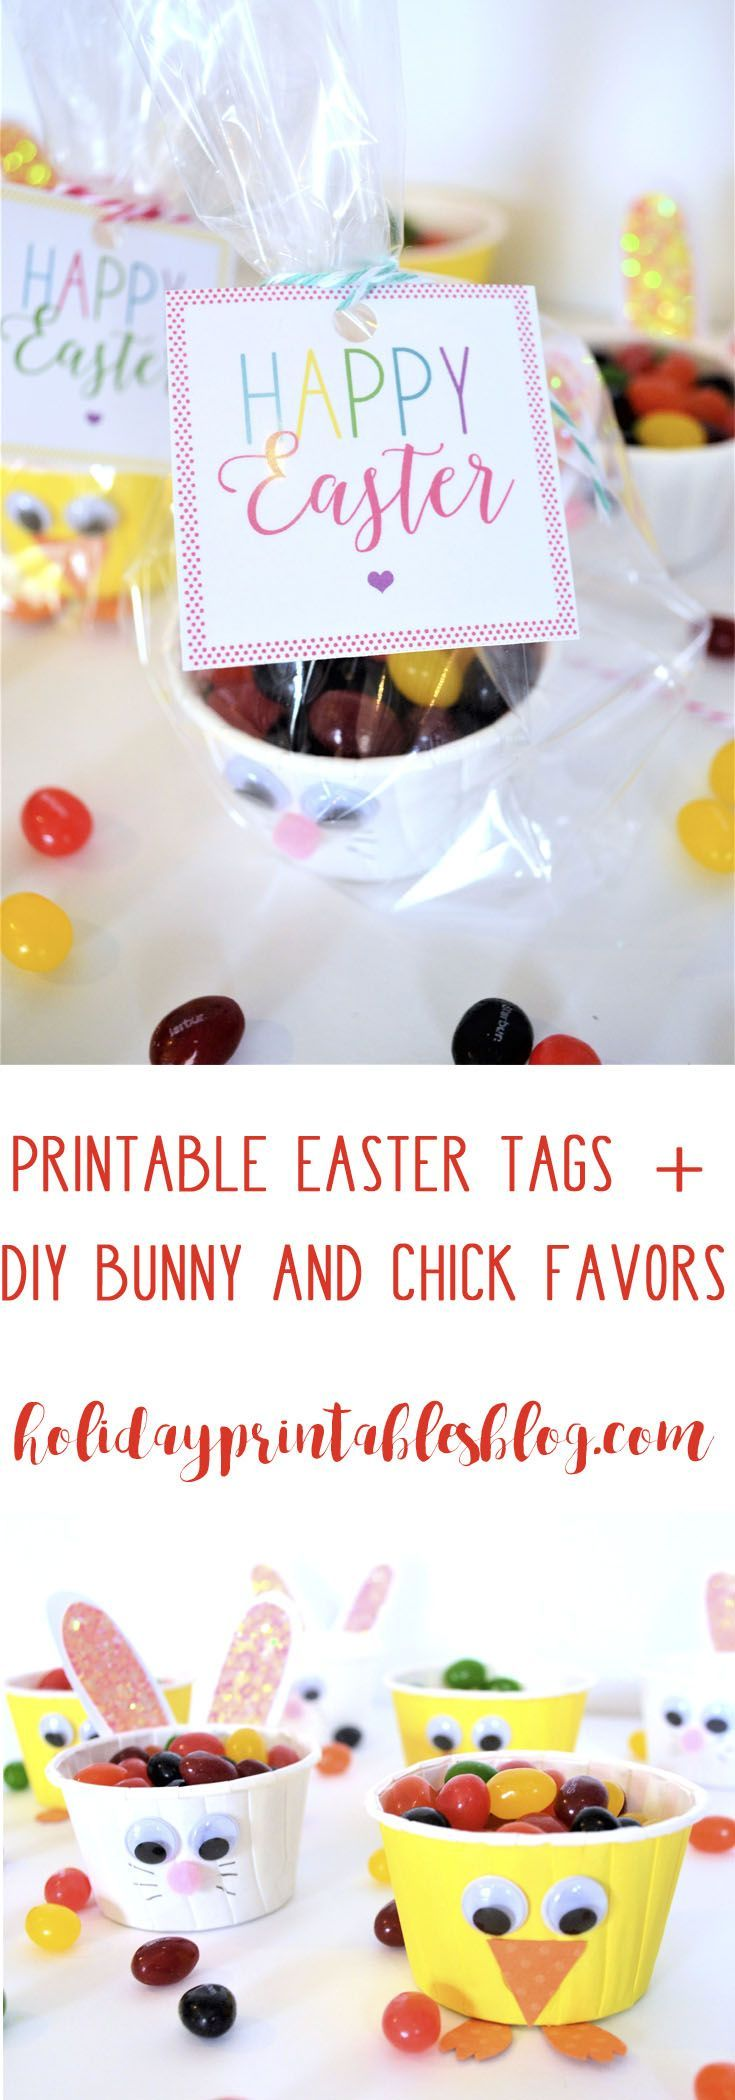 Free printable easter tags diy bunny and chick favors spring free printable happy easter gift tags plus how to make bunny and chick favors the negle Images